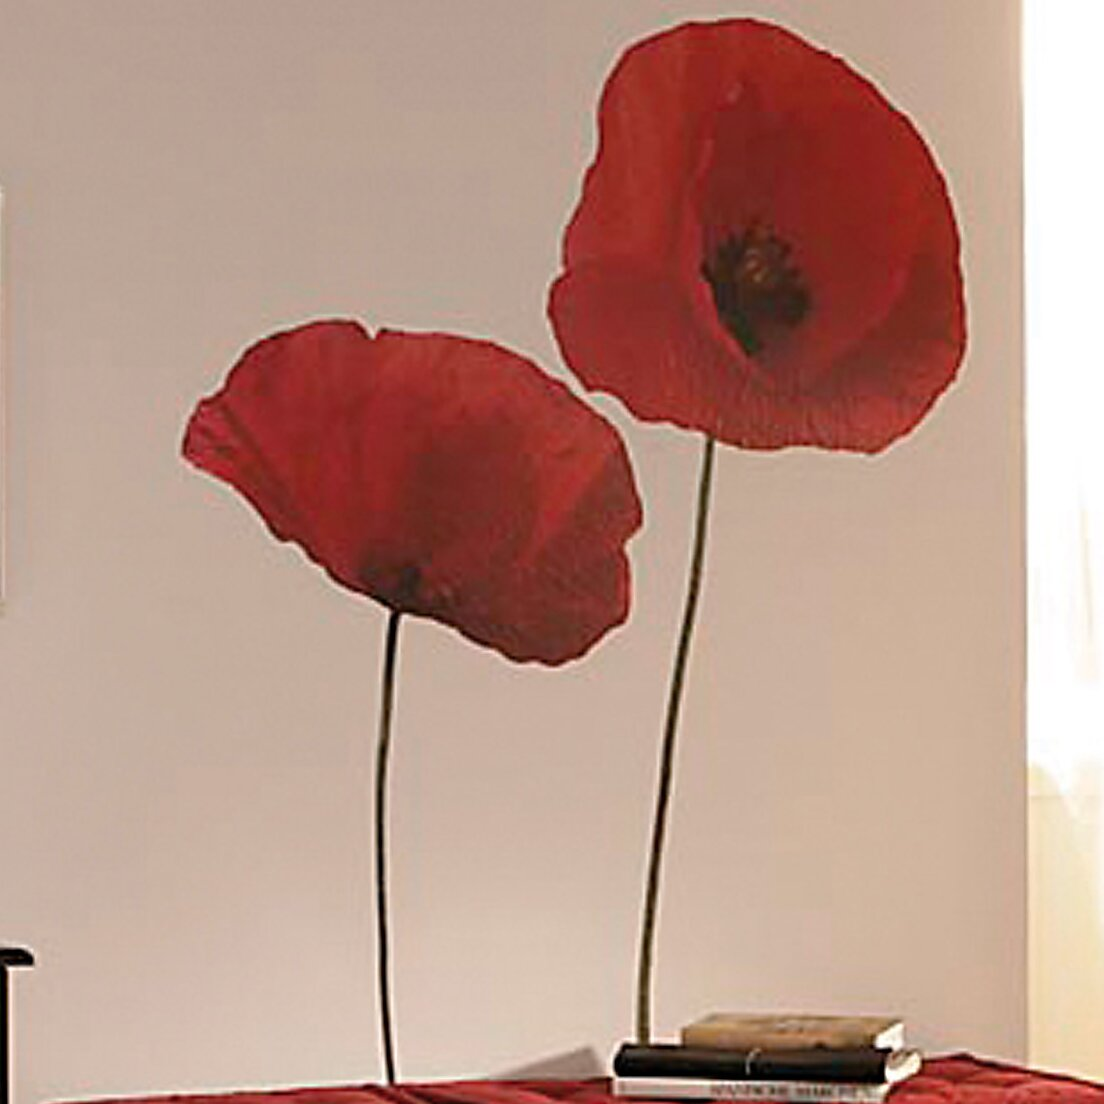 brewster home fashions euro poppies wall decal amp reviews china red poppies wall sticker fk 1168gm china wall